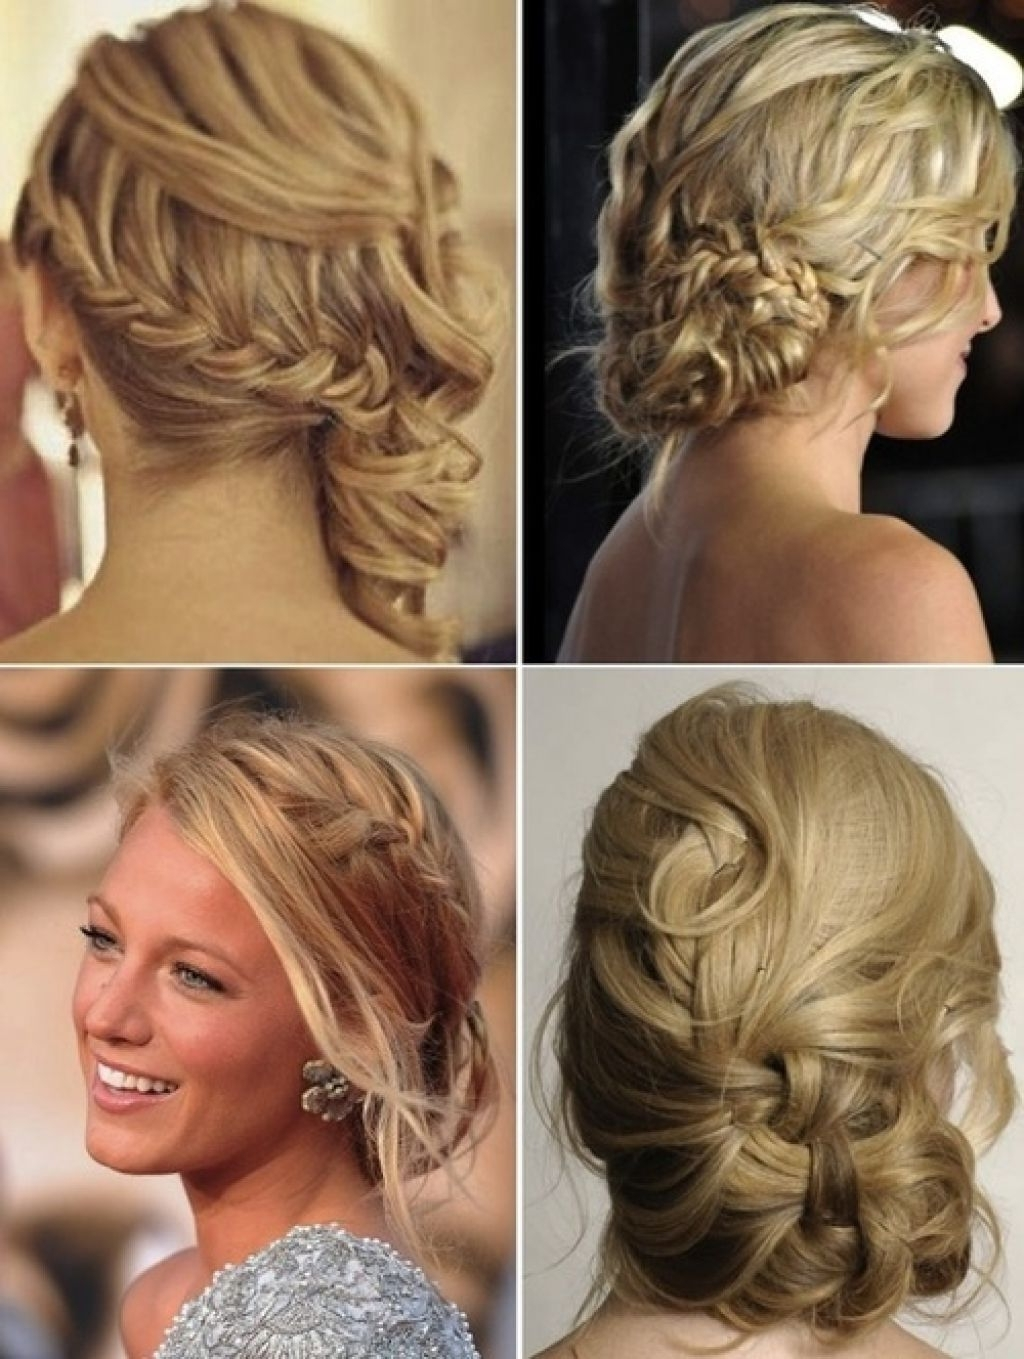 Newest Wedding Hairstyles For Medium Length Thick Hair With Casual Wedding Hairstyles For Long Hair – Hairstyle For Women & Man (View 12 of 15)